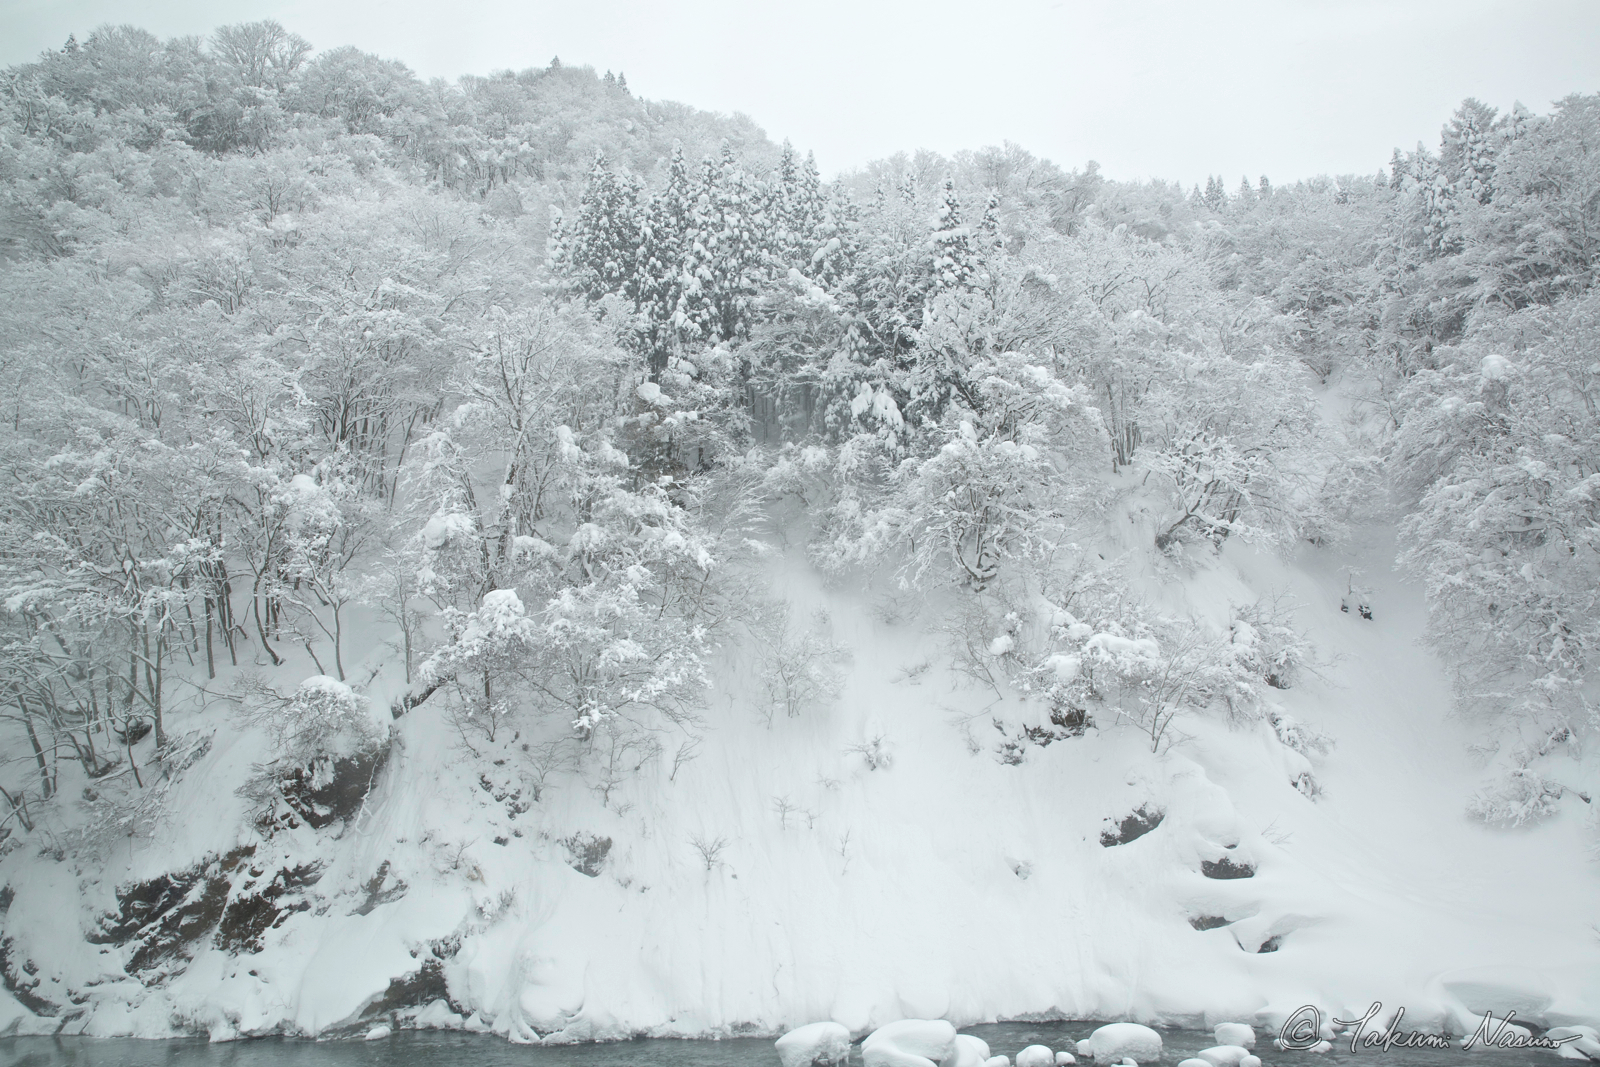 Snowy Wall of Hime River